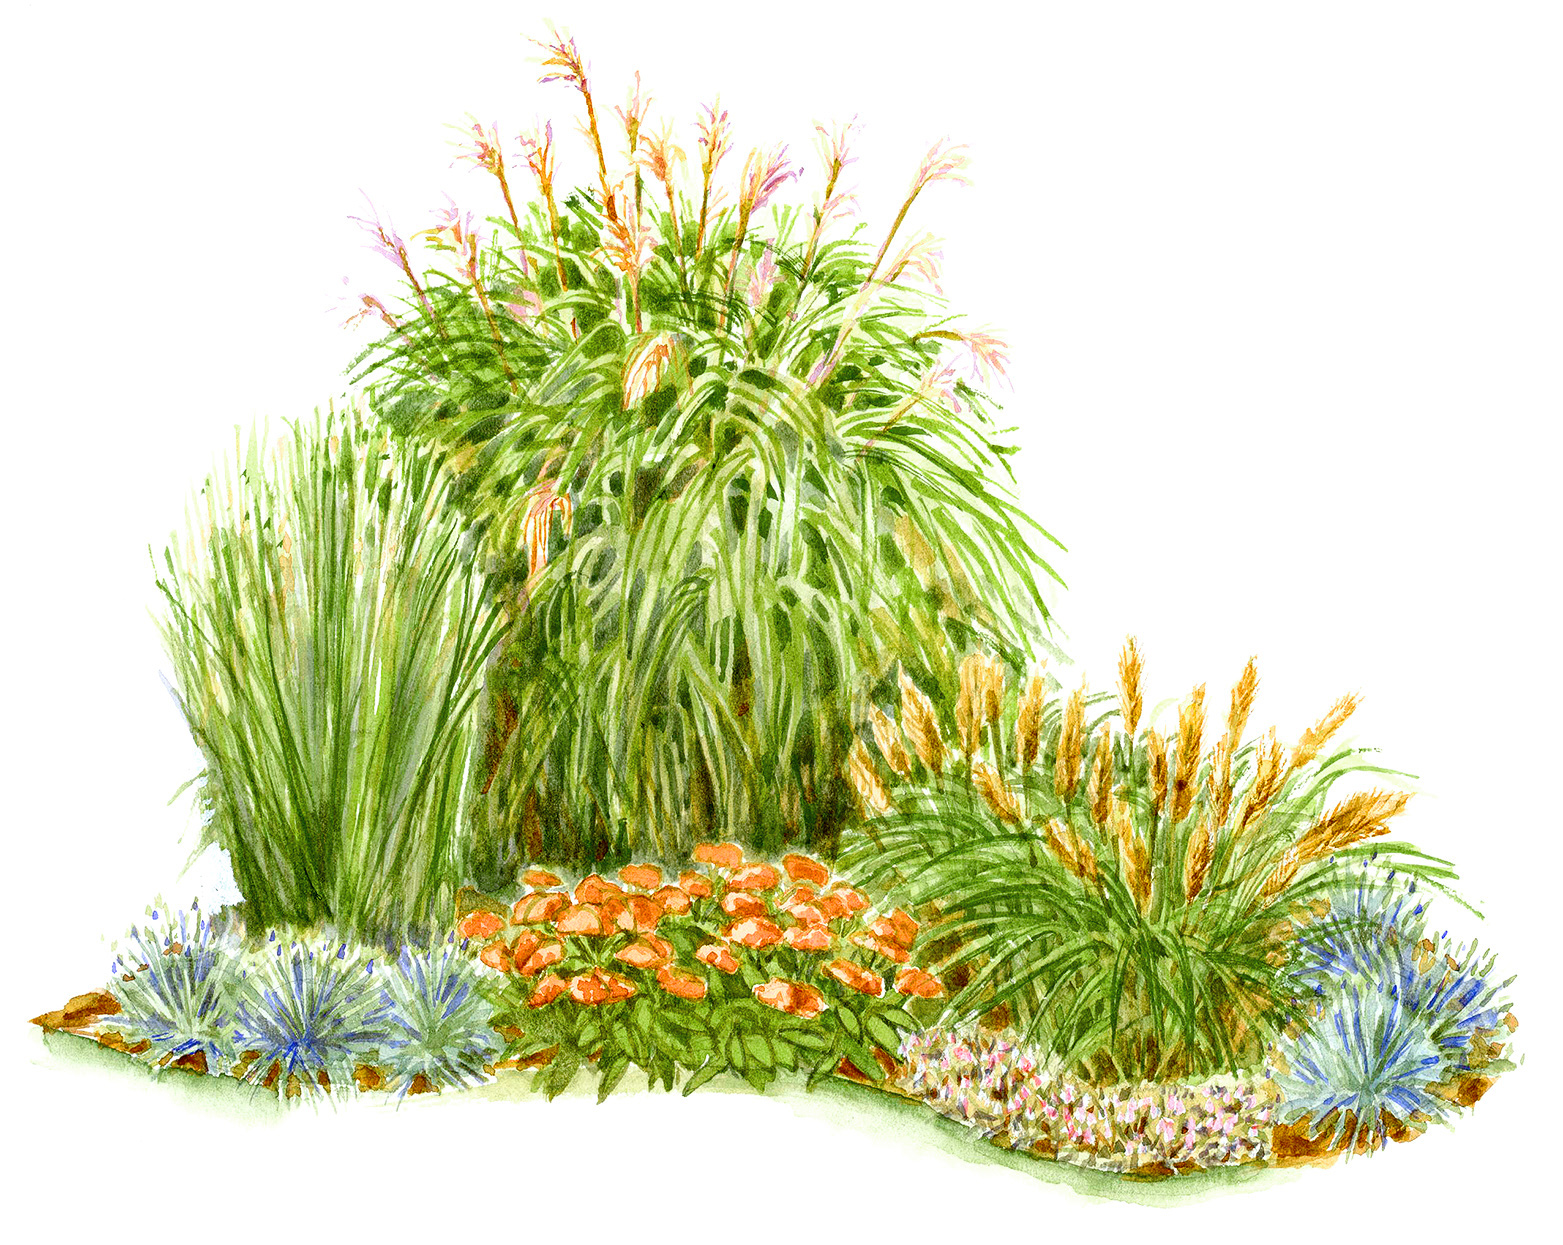 15 No-Fuss Gardens Plans to Try In Your Garden on small flowers ideas, small front garden ideas, small garden decorating ideas, small garden plans, backyard garden ideas, garden design ideas, gardens for small garden ideas, small garden table ideas, small garden wedding ideas, garden landscaping ideas, backyard bed ideas, small vegetable garden ideas, container bed ideas, small garden tree ideas, small garden decor ideas, small rock garden ideas, flowers bed ideas, small low maintenance front yard landscaping ideas, garage bed ideas, small cottage garden ideas,